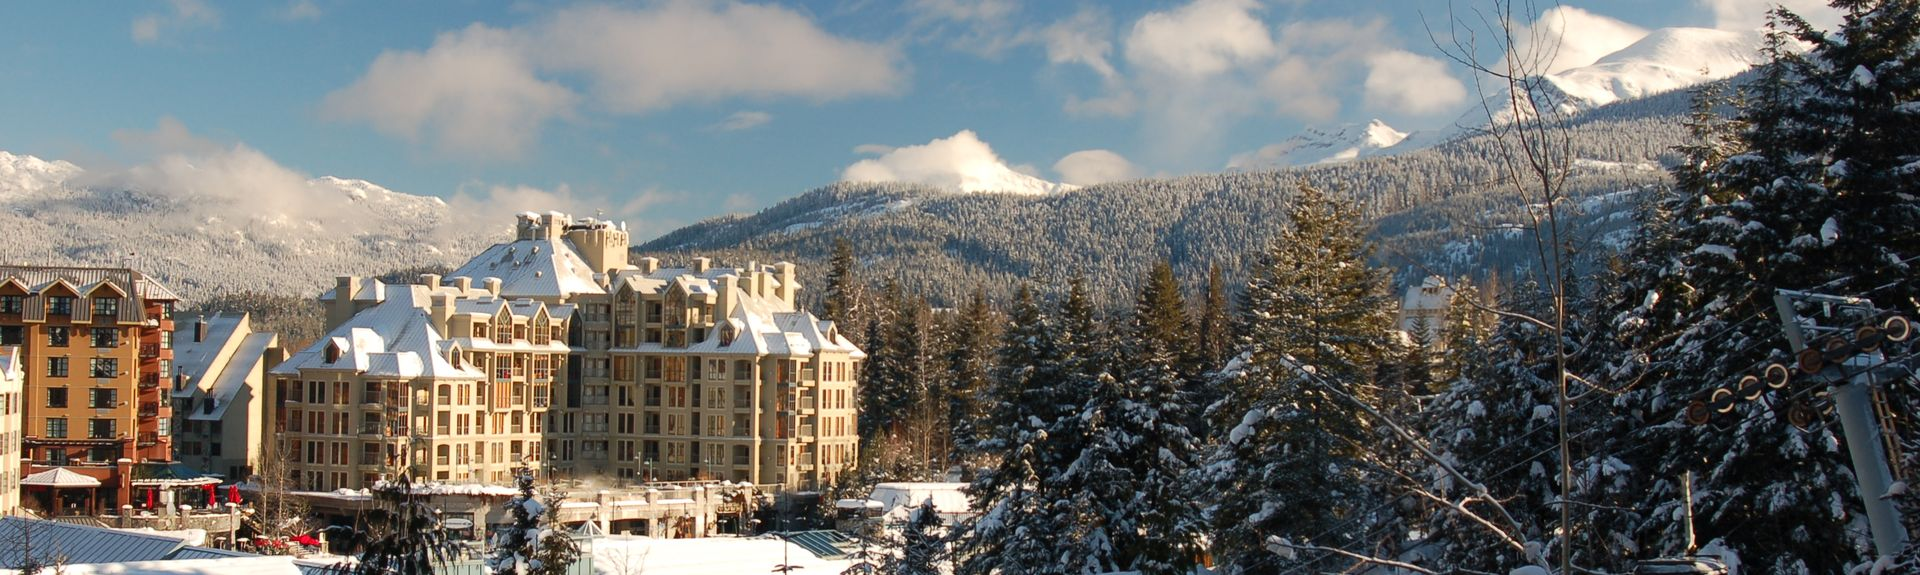 The Westin Resort & Spa, Whistler, British Columbia, Canada